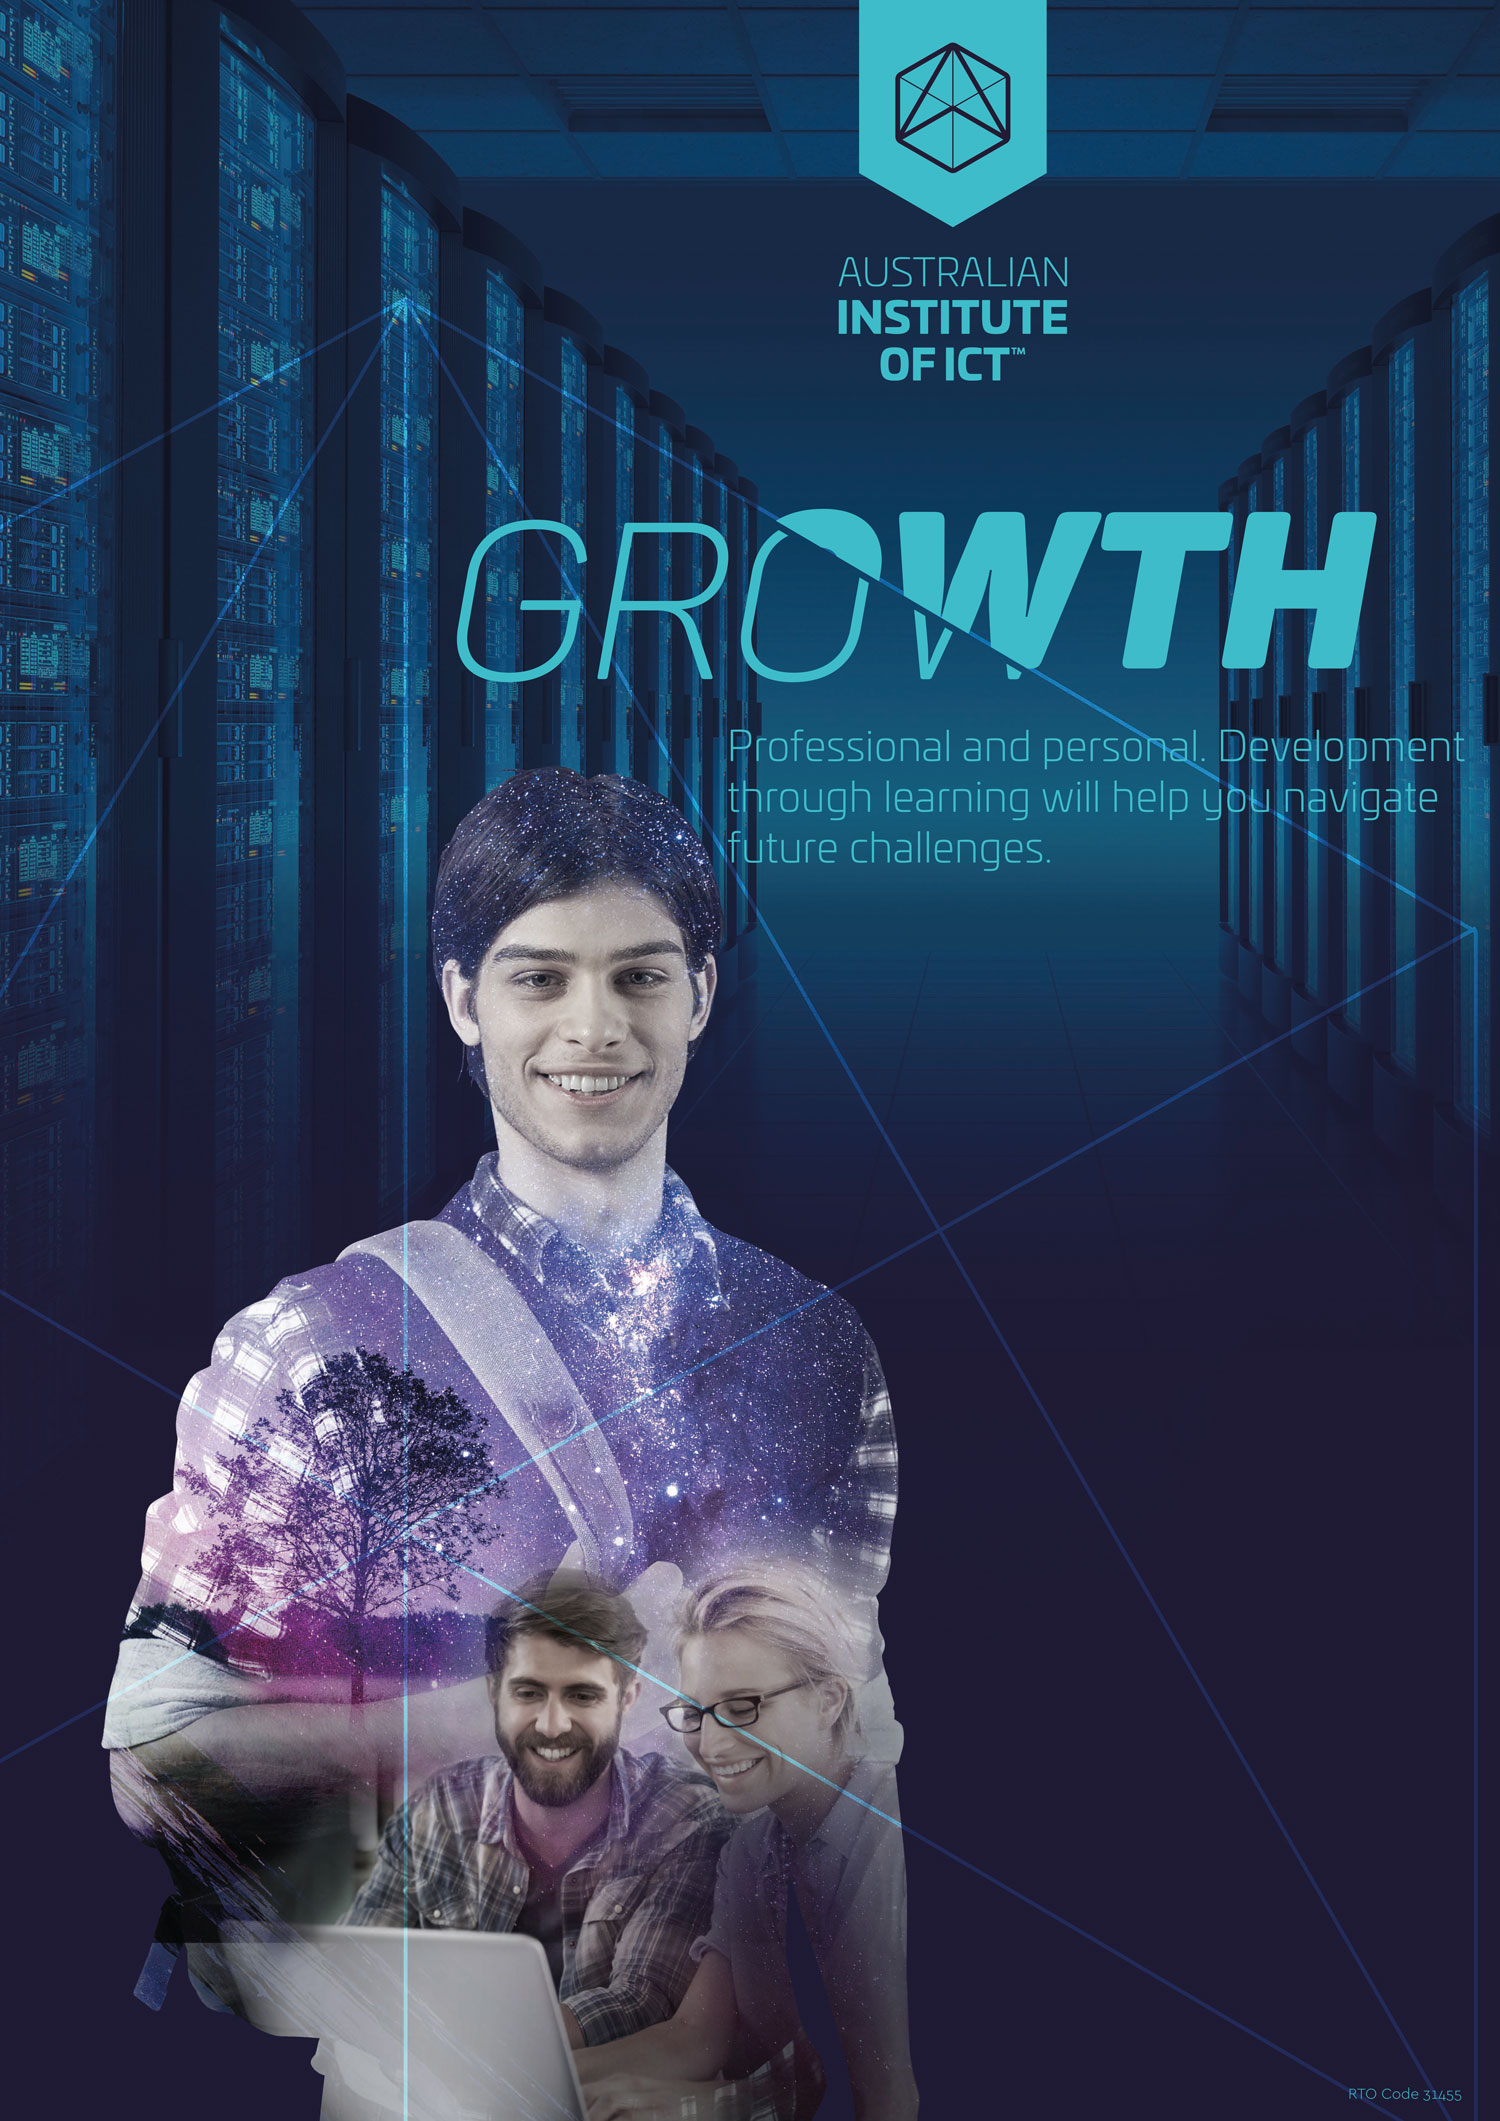 Growth Poster Design